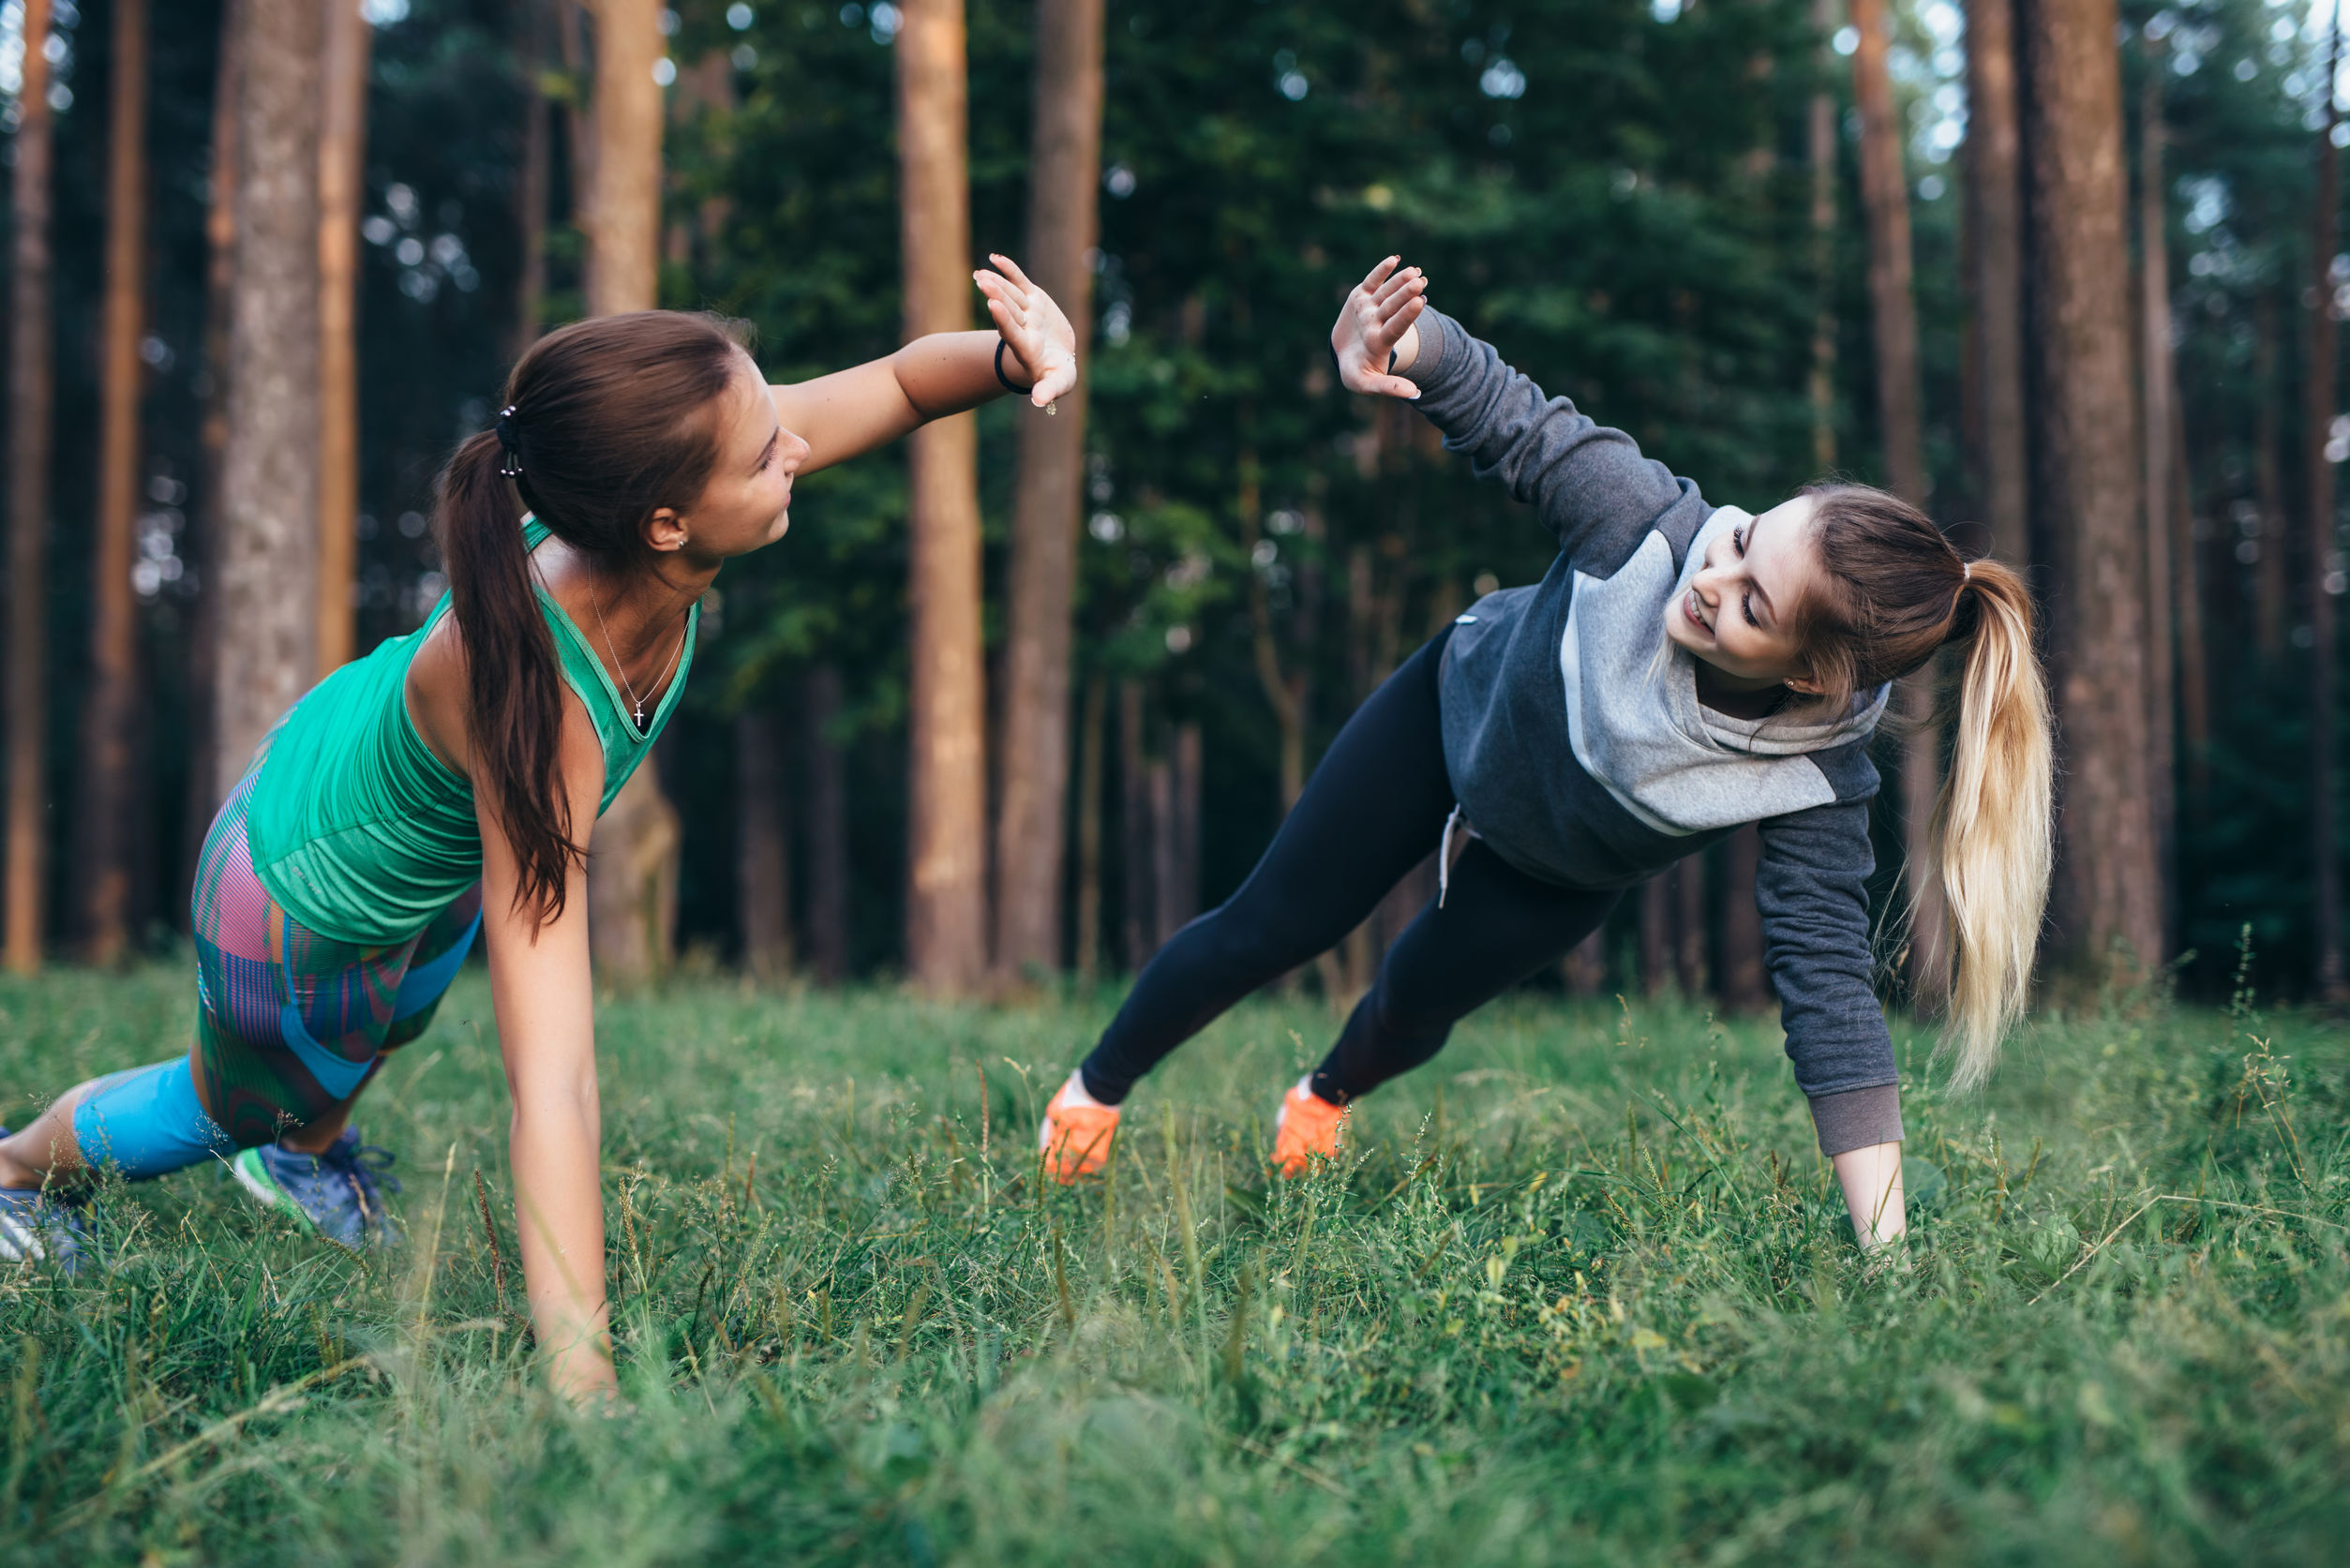 Pair Up for Partner Workouts